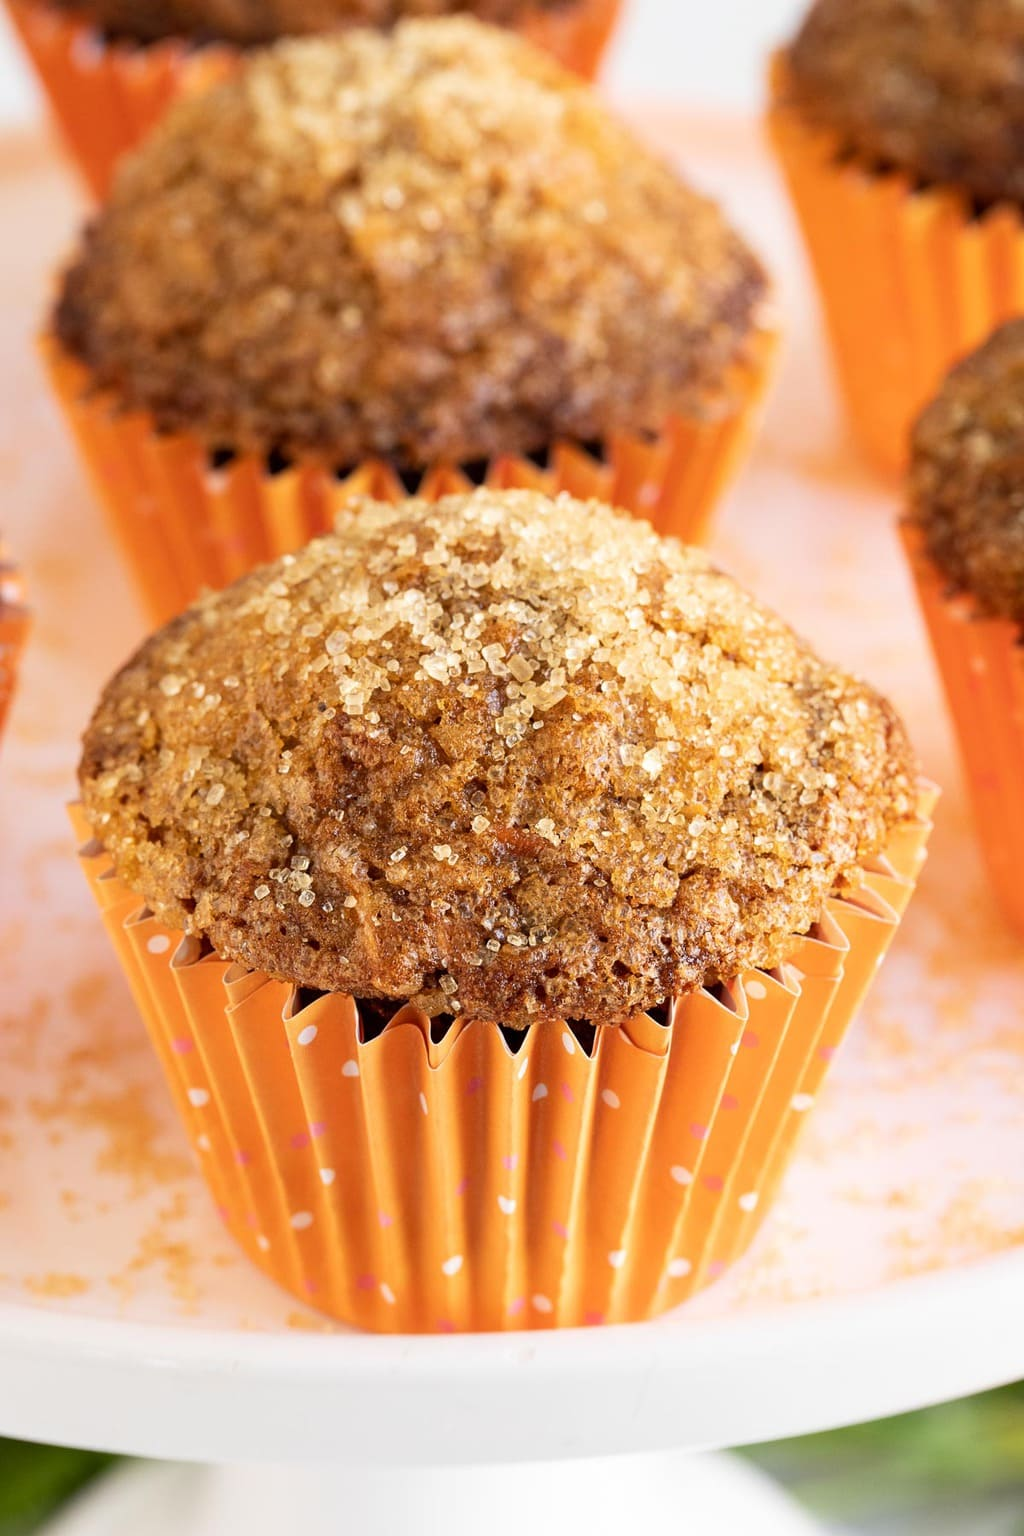 Vertical closeup photo of a batch of Sugar Top Carrot Muffins sprinkled with sugar in orange cupcake liners.